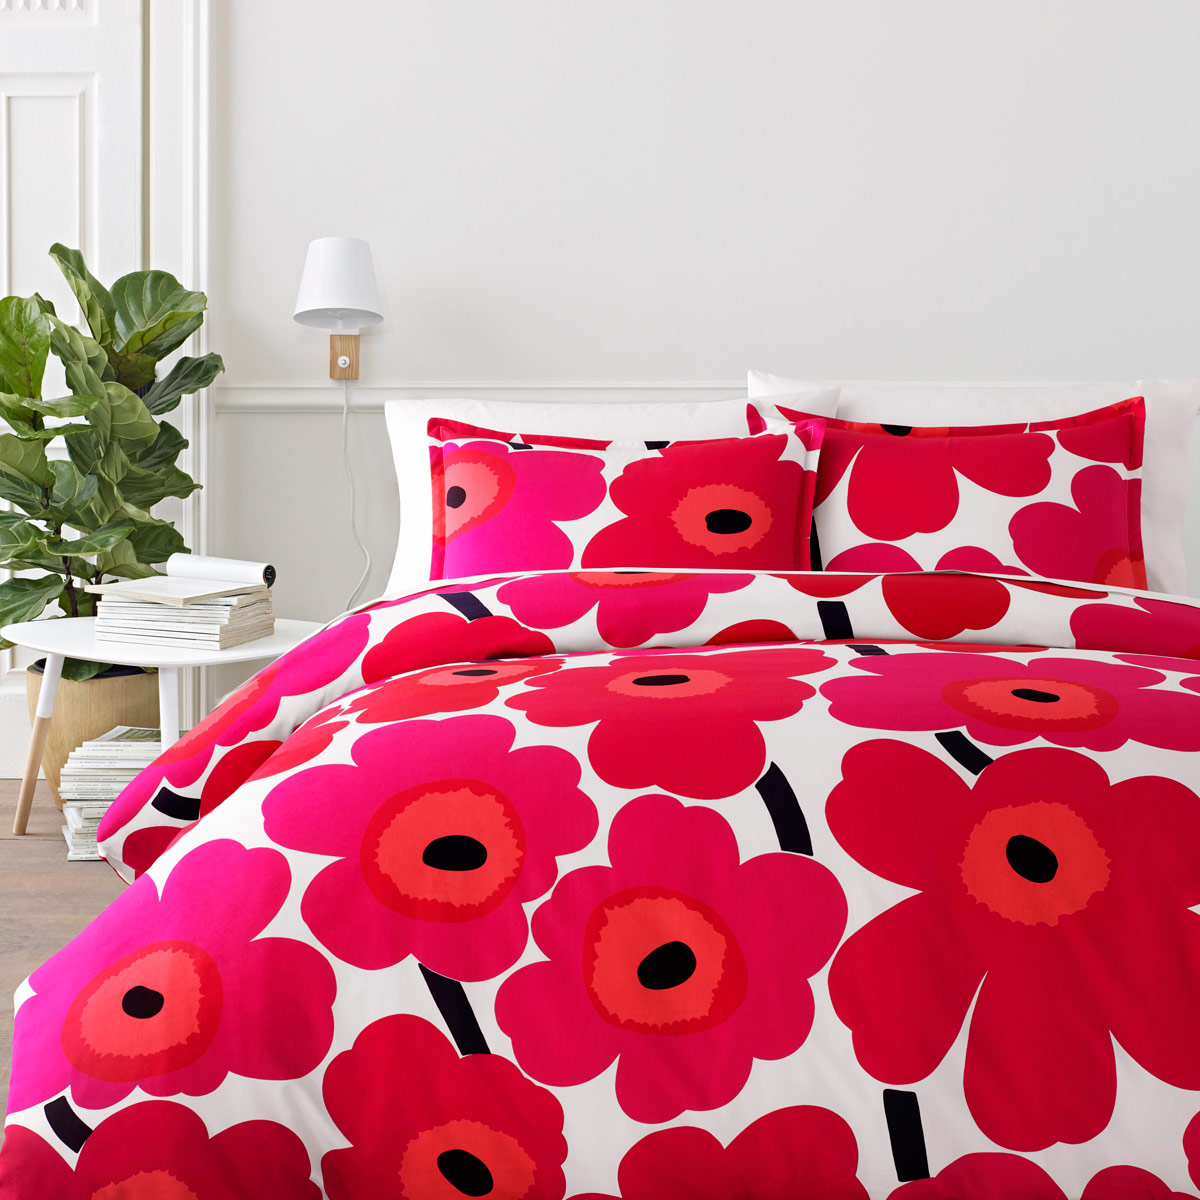 bedding cover comforter king textile covers flower full duvet home sweetheart sets red purple wedding in cotton pattern item from queen fashion